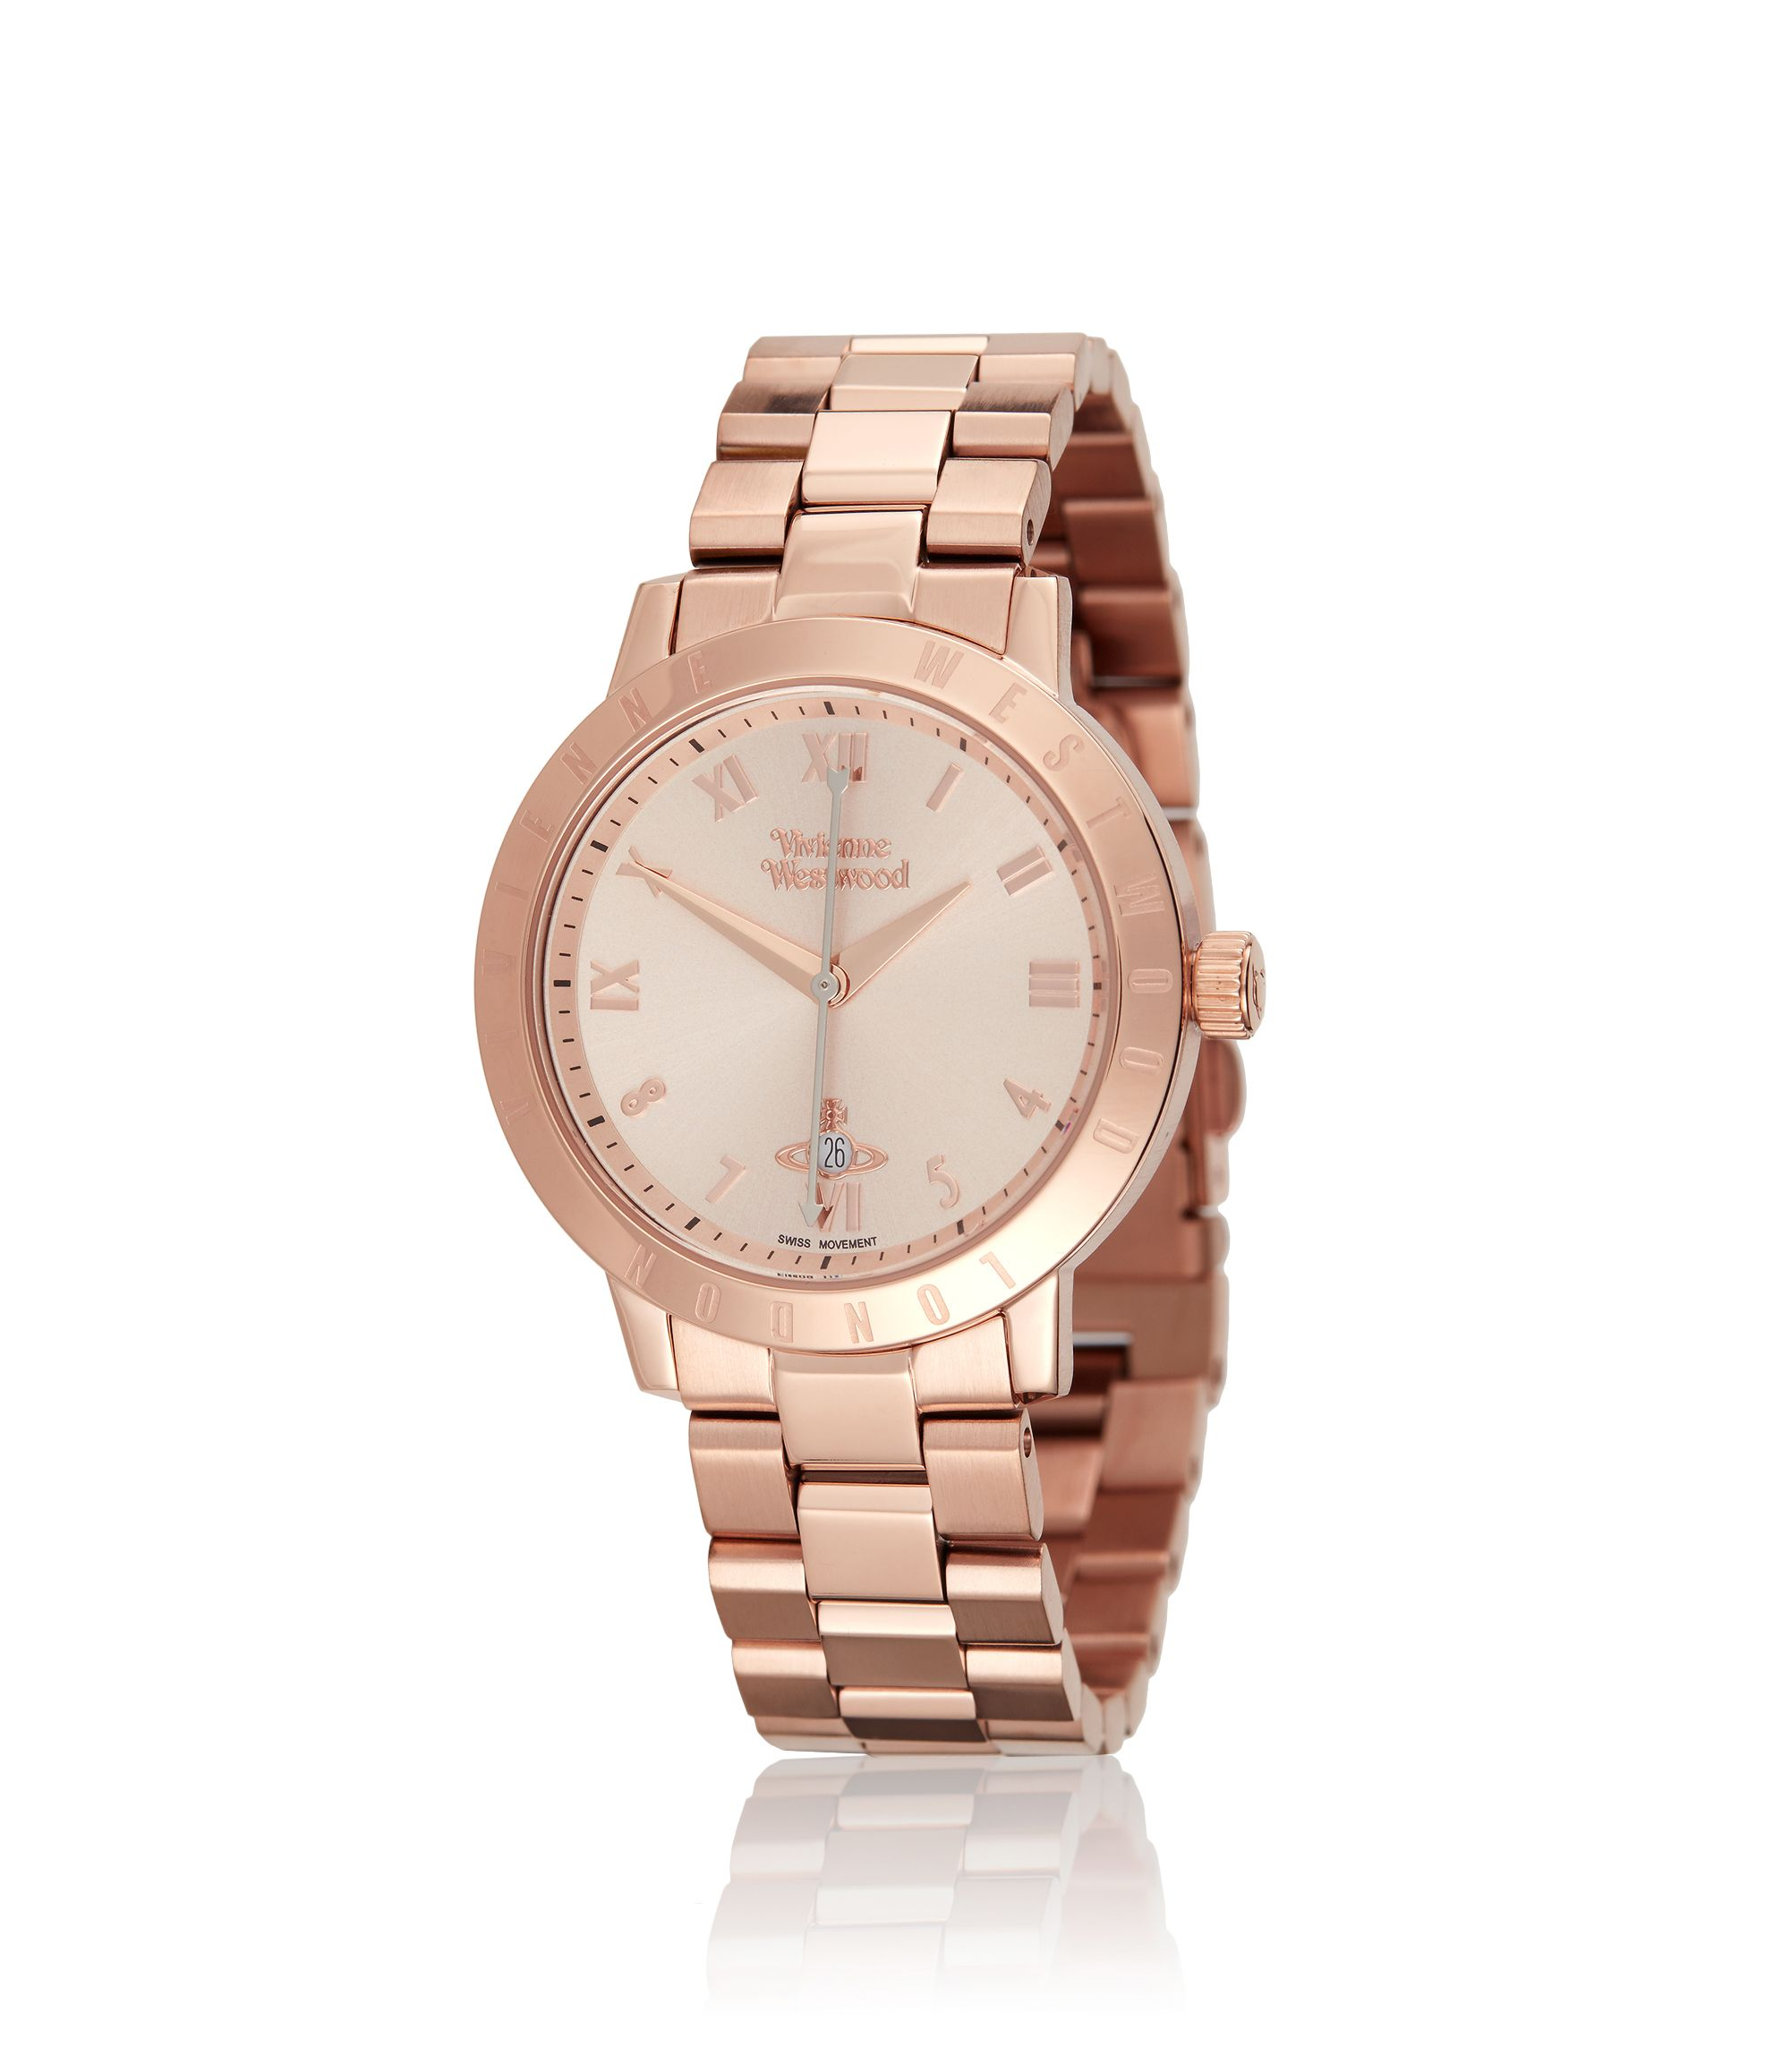 Bloomsbury Watch Rose Gold · BloomsburyVivienne WestwoodRose Gold